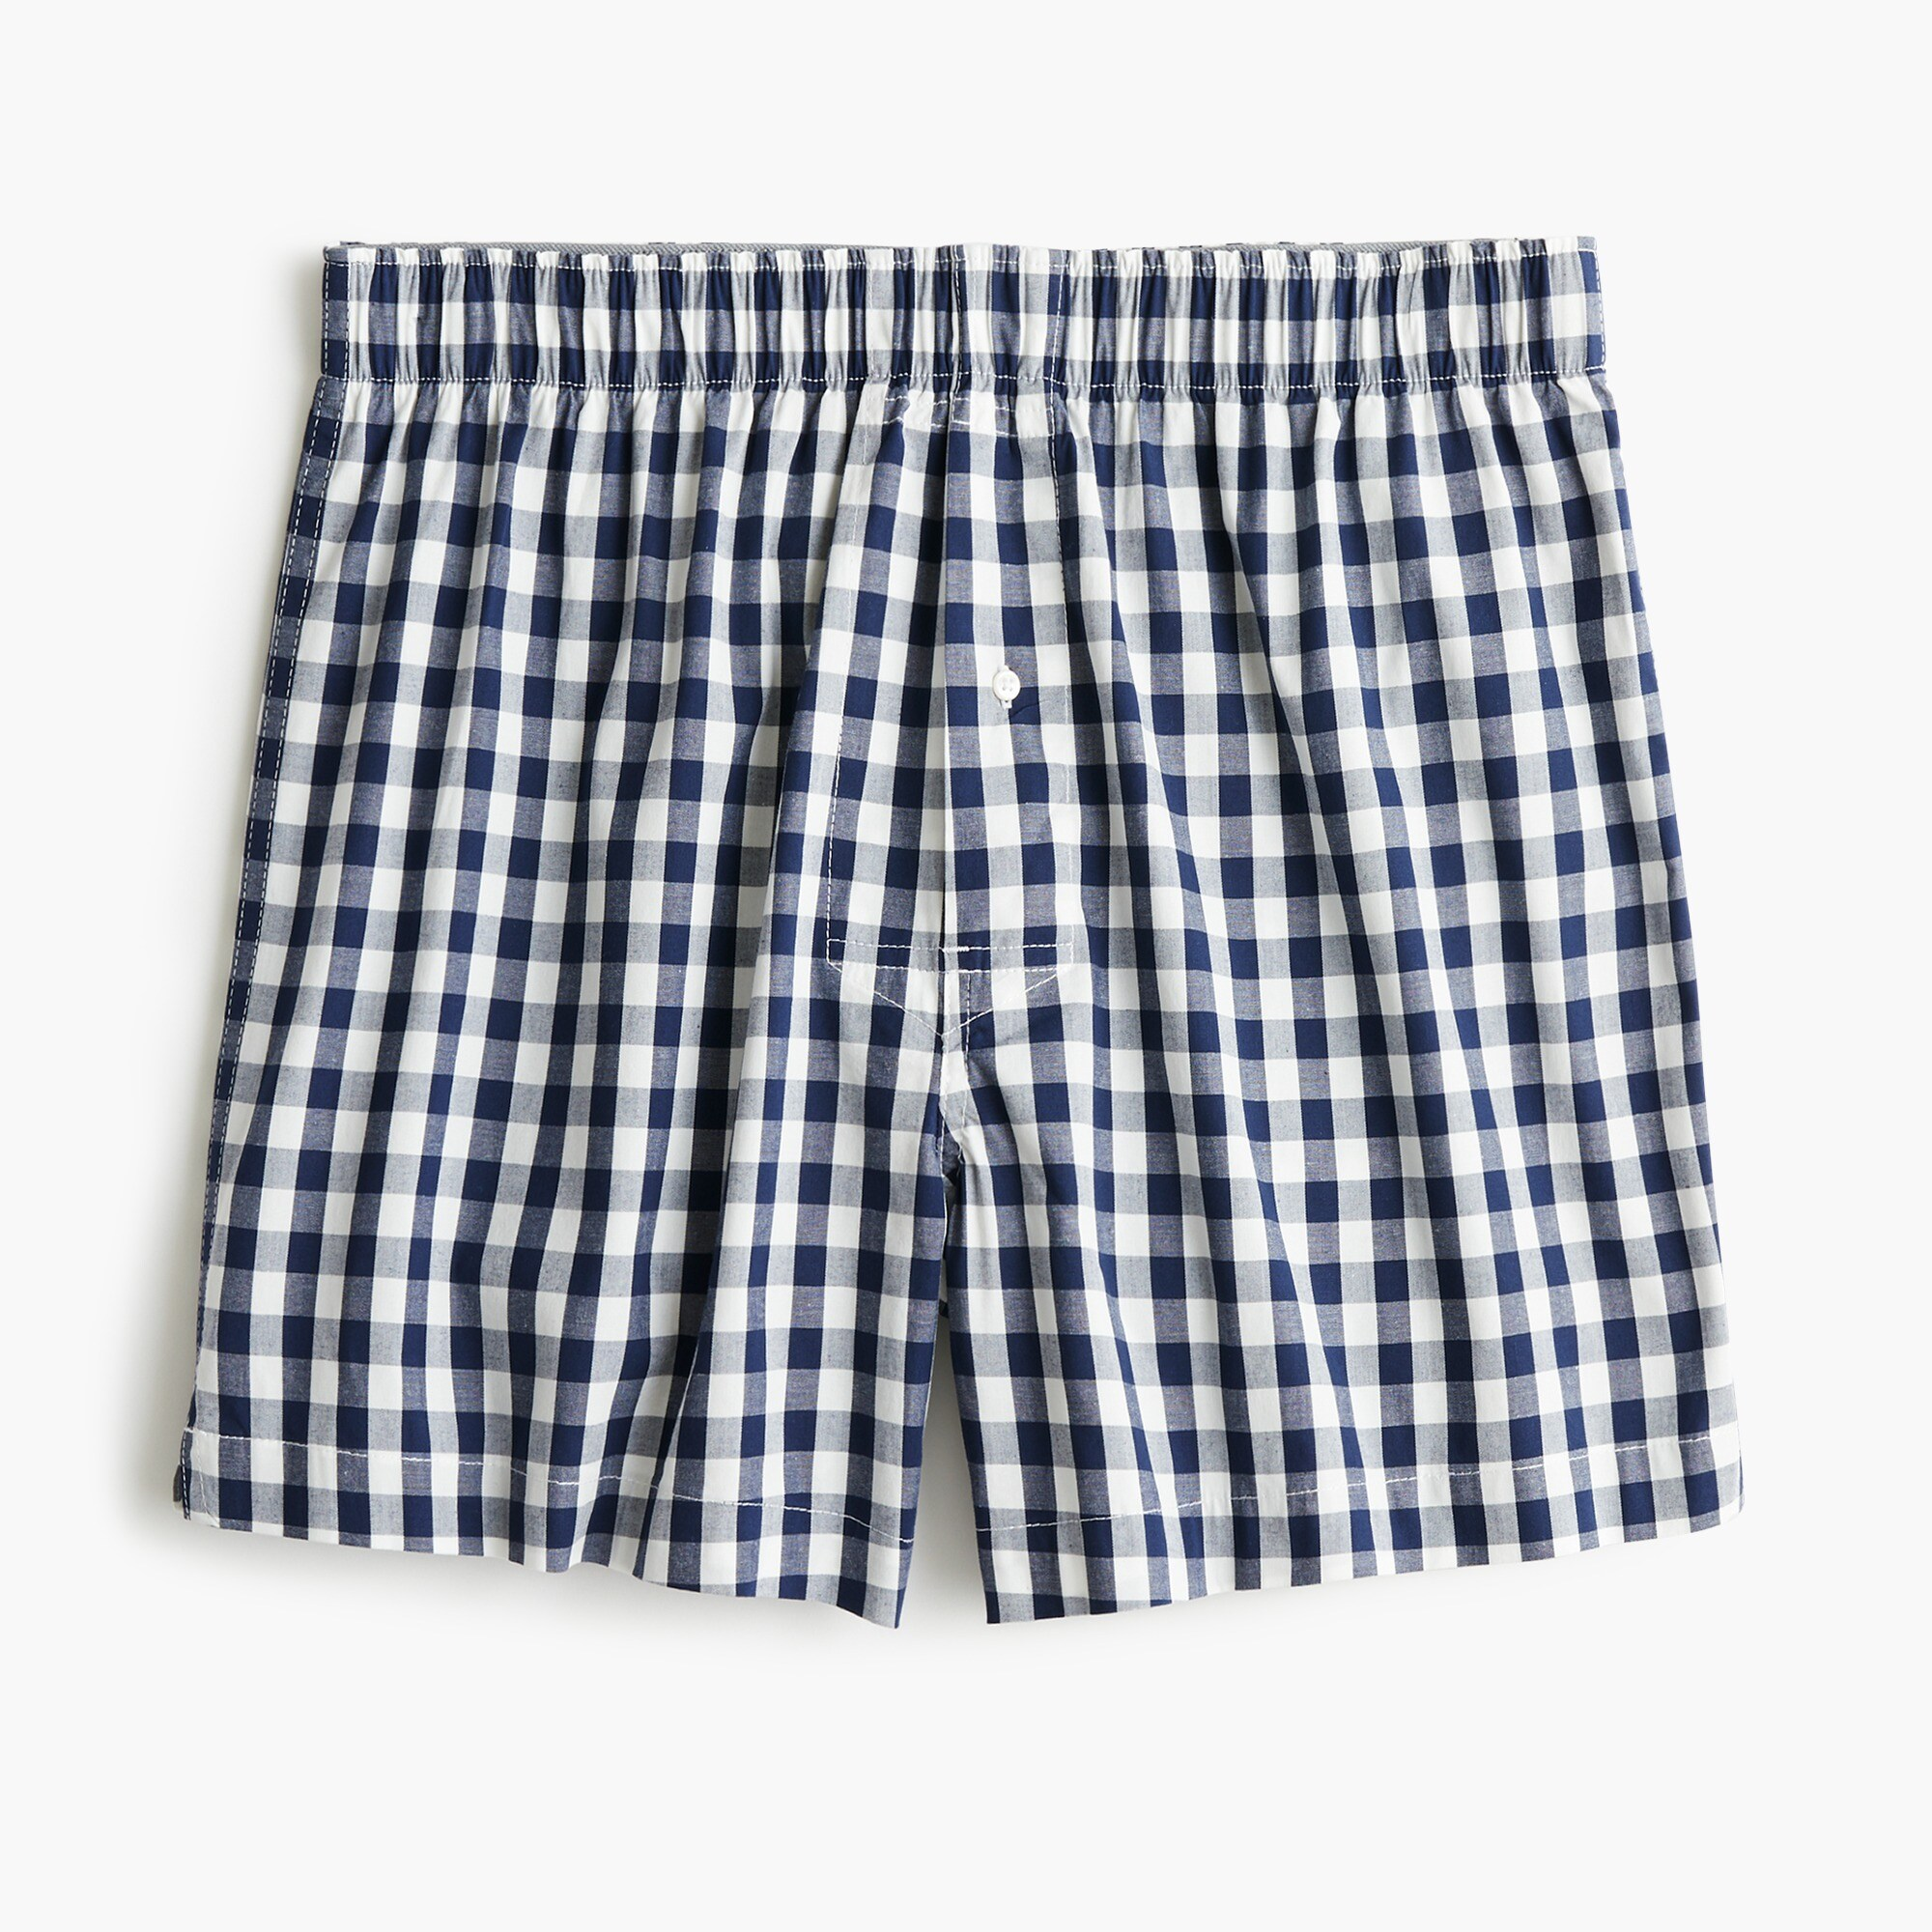 mens Stretch navy gingham boxers